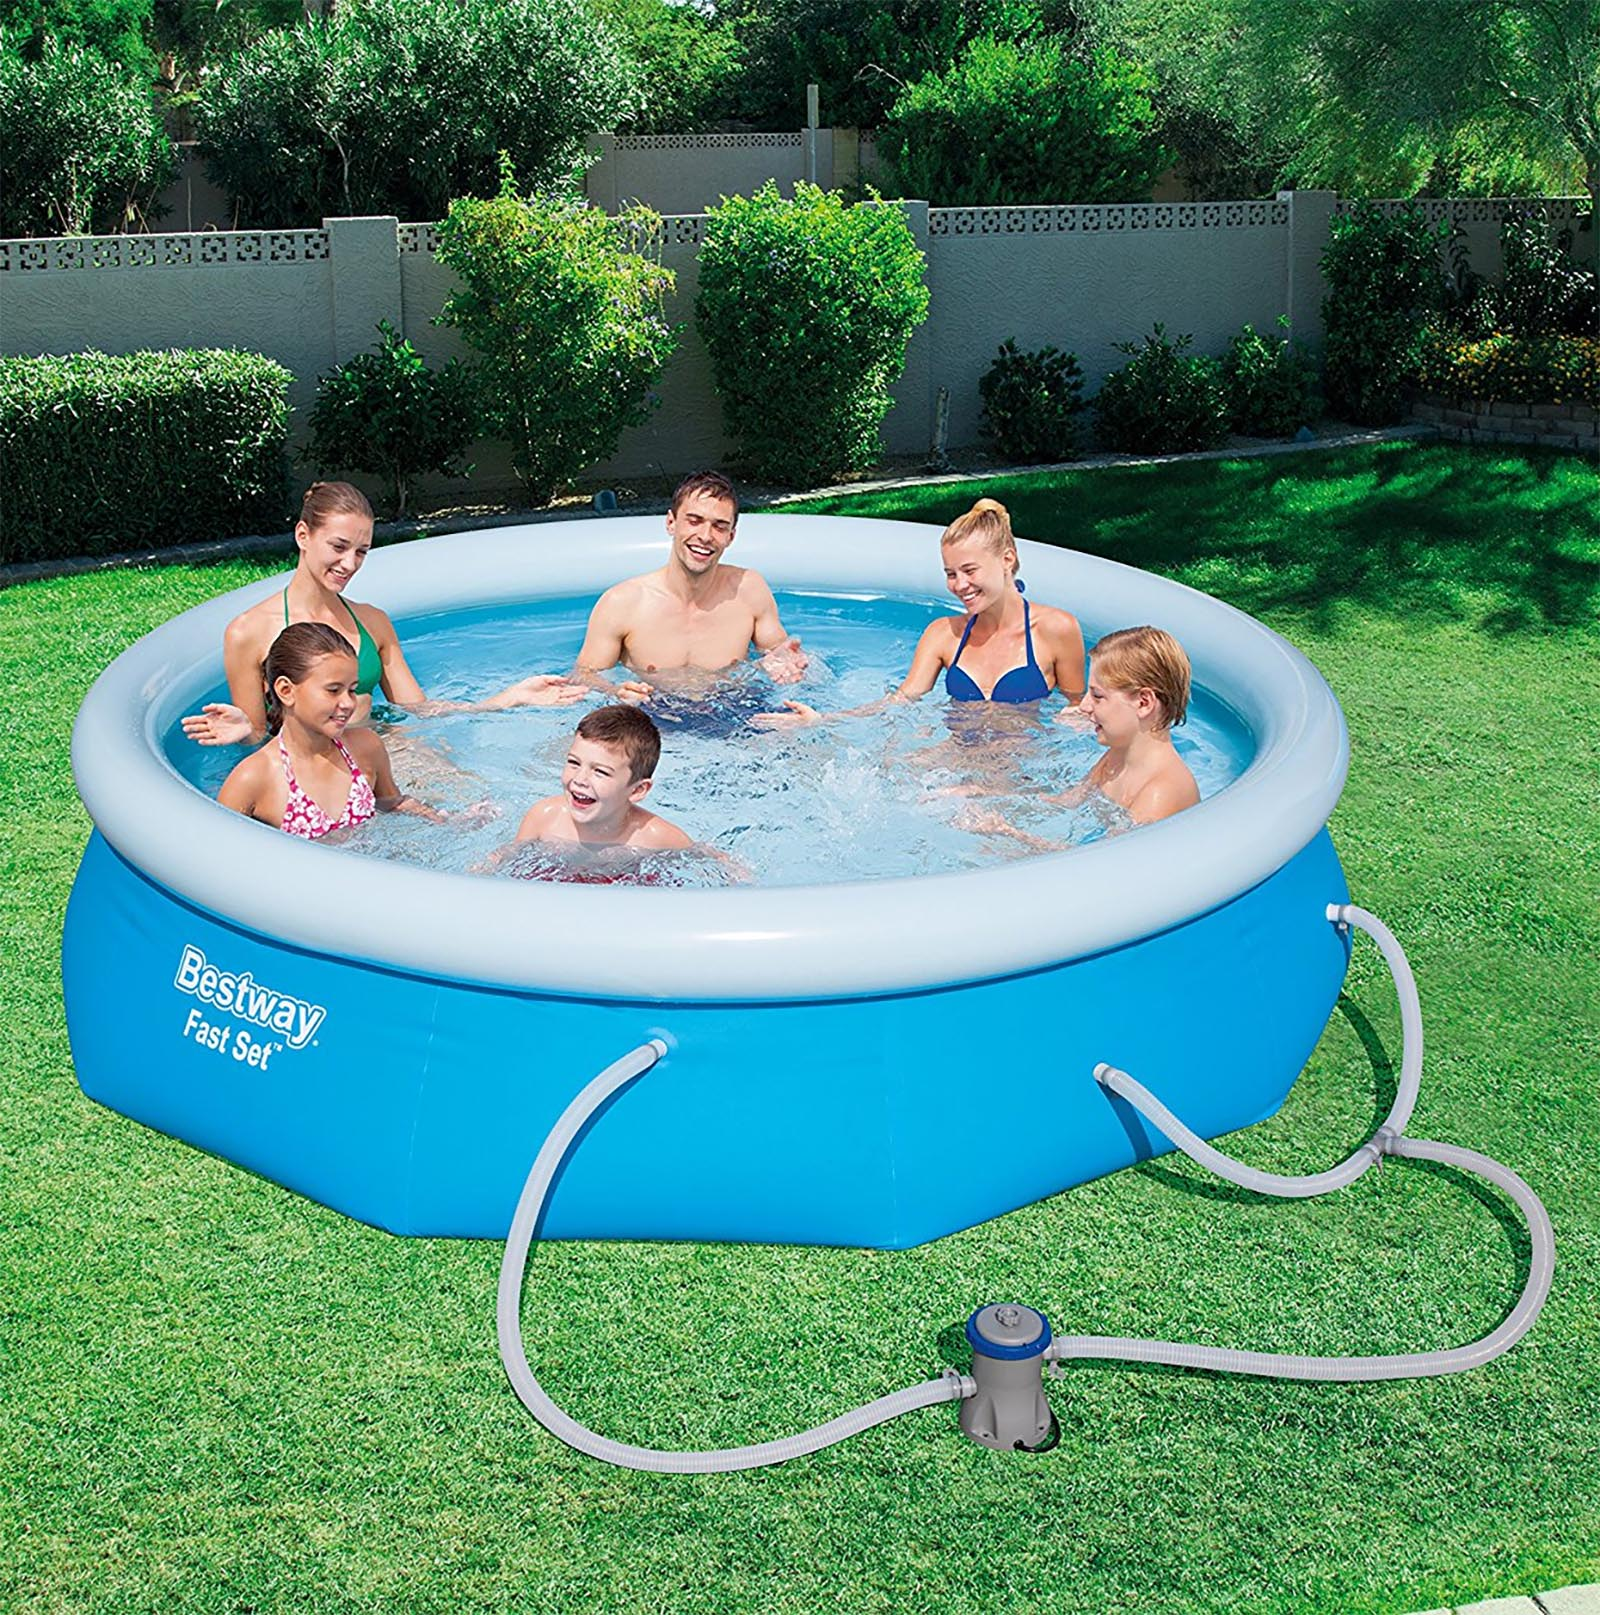 Bestway 10 39 x 30 fast set inflatable above ground for Inflatable above ground pools